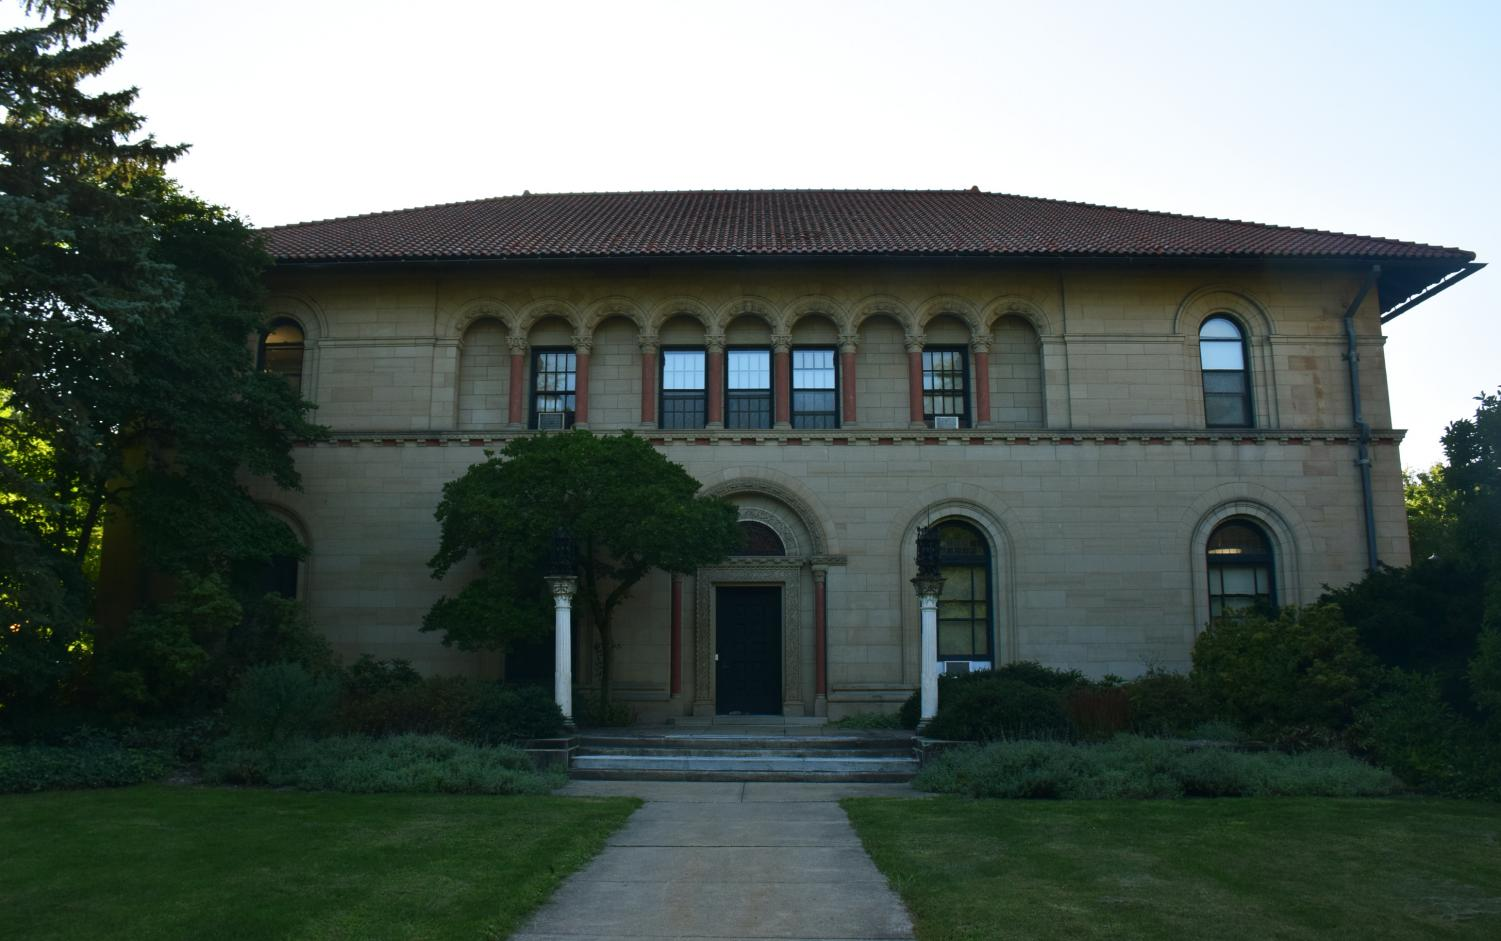 The Cox Administration Building houses the Dean of the College of Arts & Sciences' office. Currently, both the College and the Conservatory are engaged in an active search for new deans.